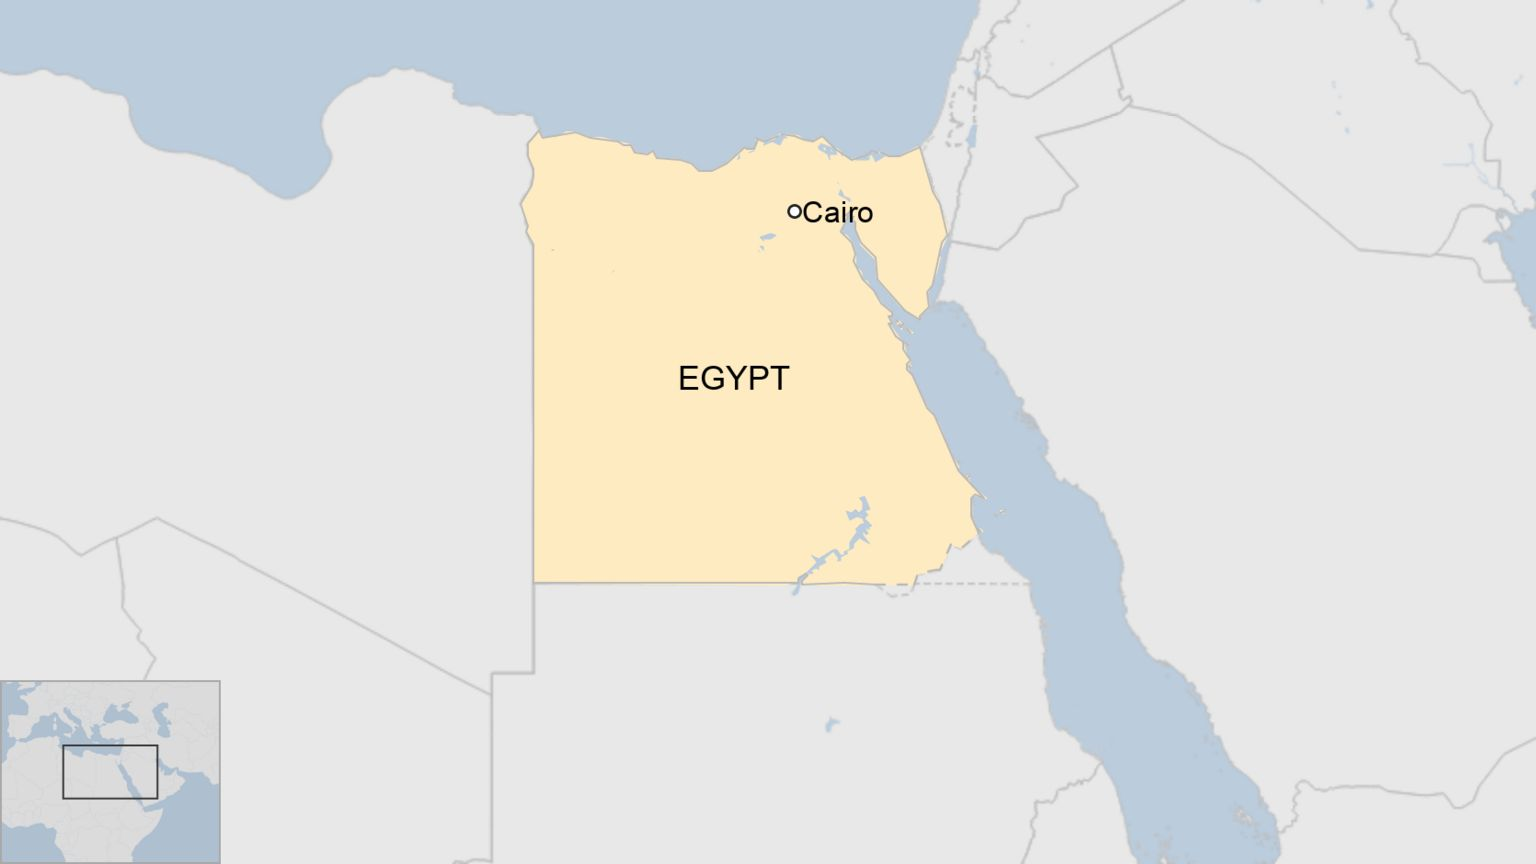 A BBC map showing where Egypt is